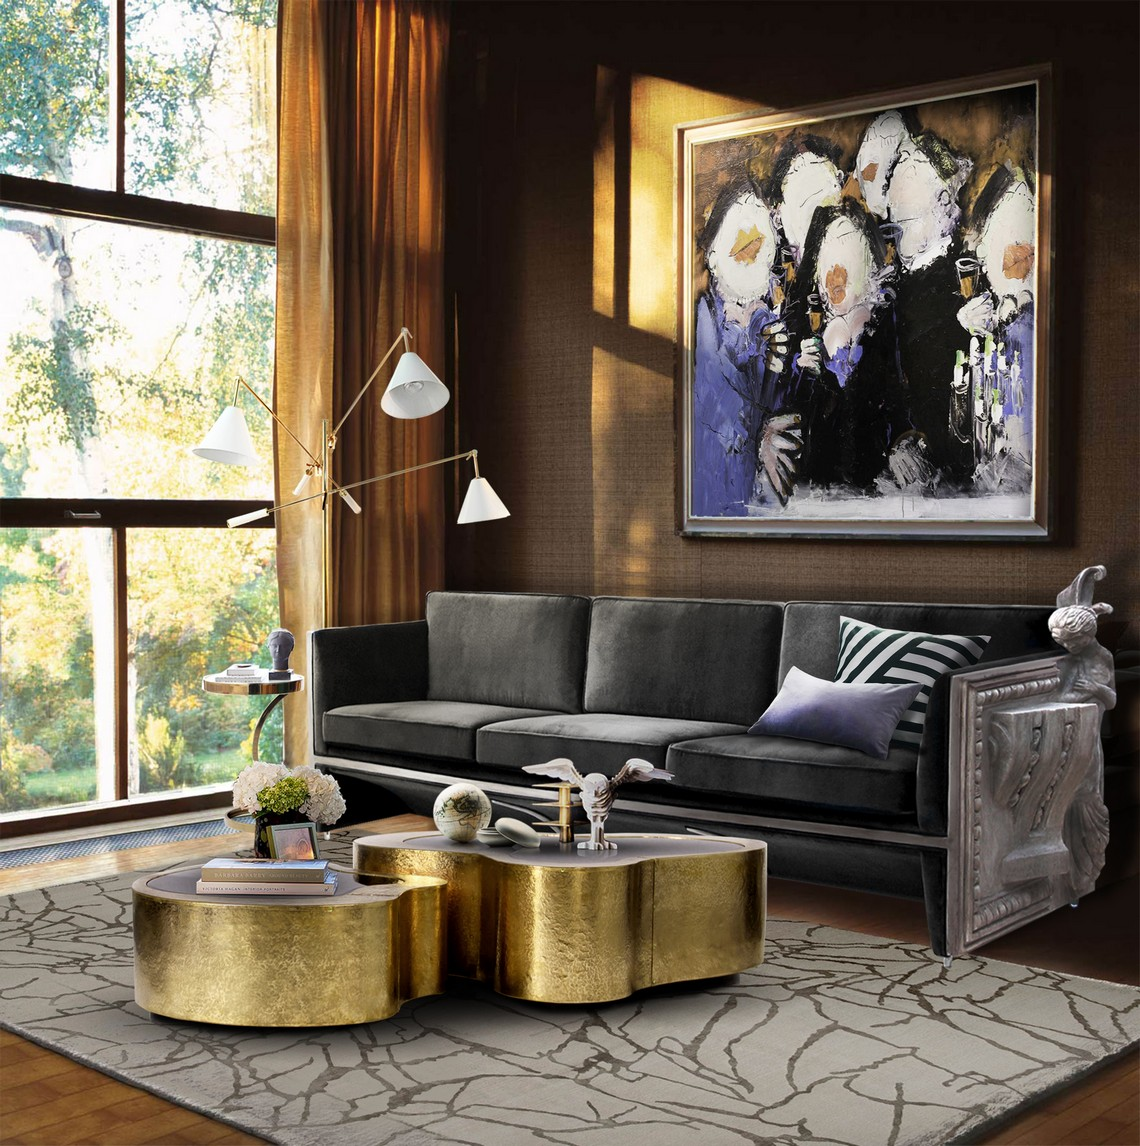 Top Artistic Sofas For Your Living Room artistic sofas Top Artistic Sofas For Your Living Room versailles cover